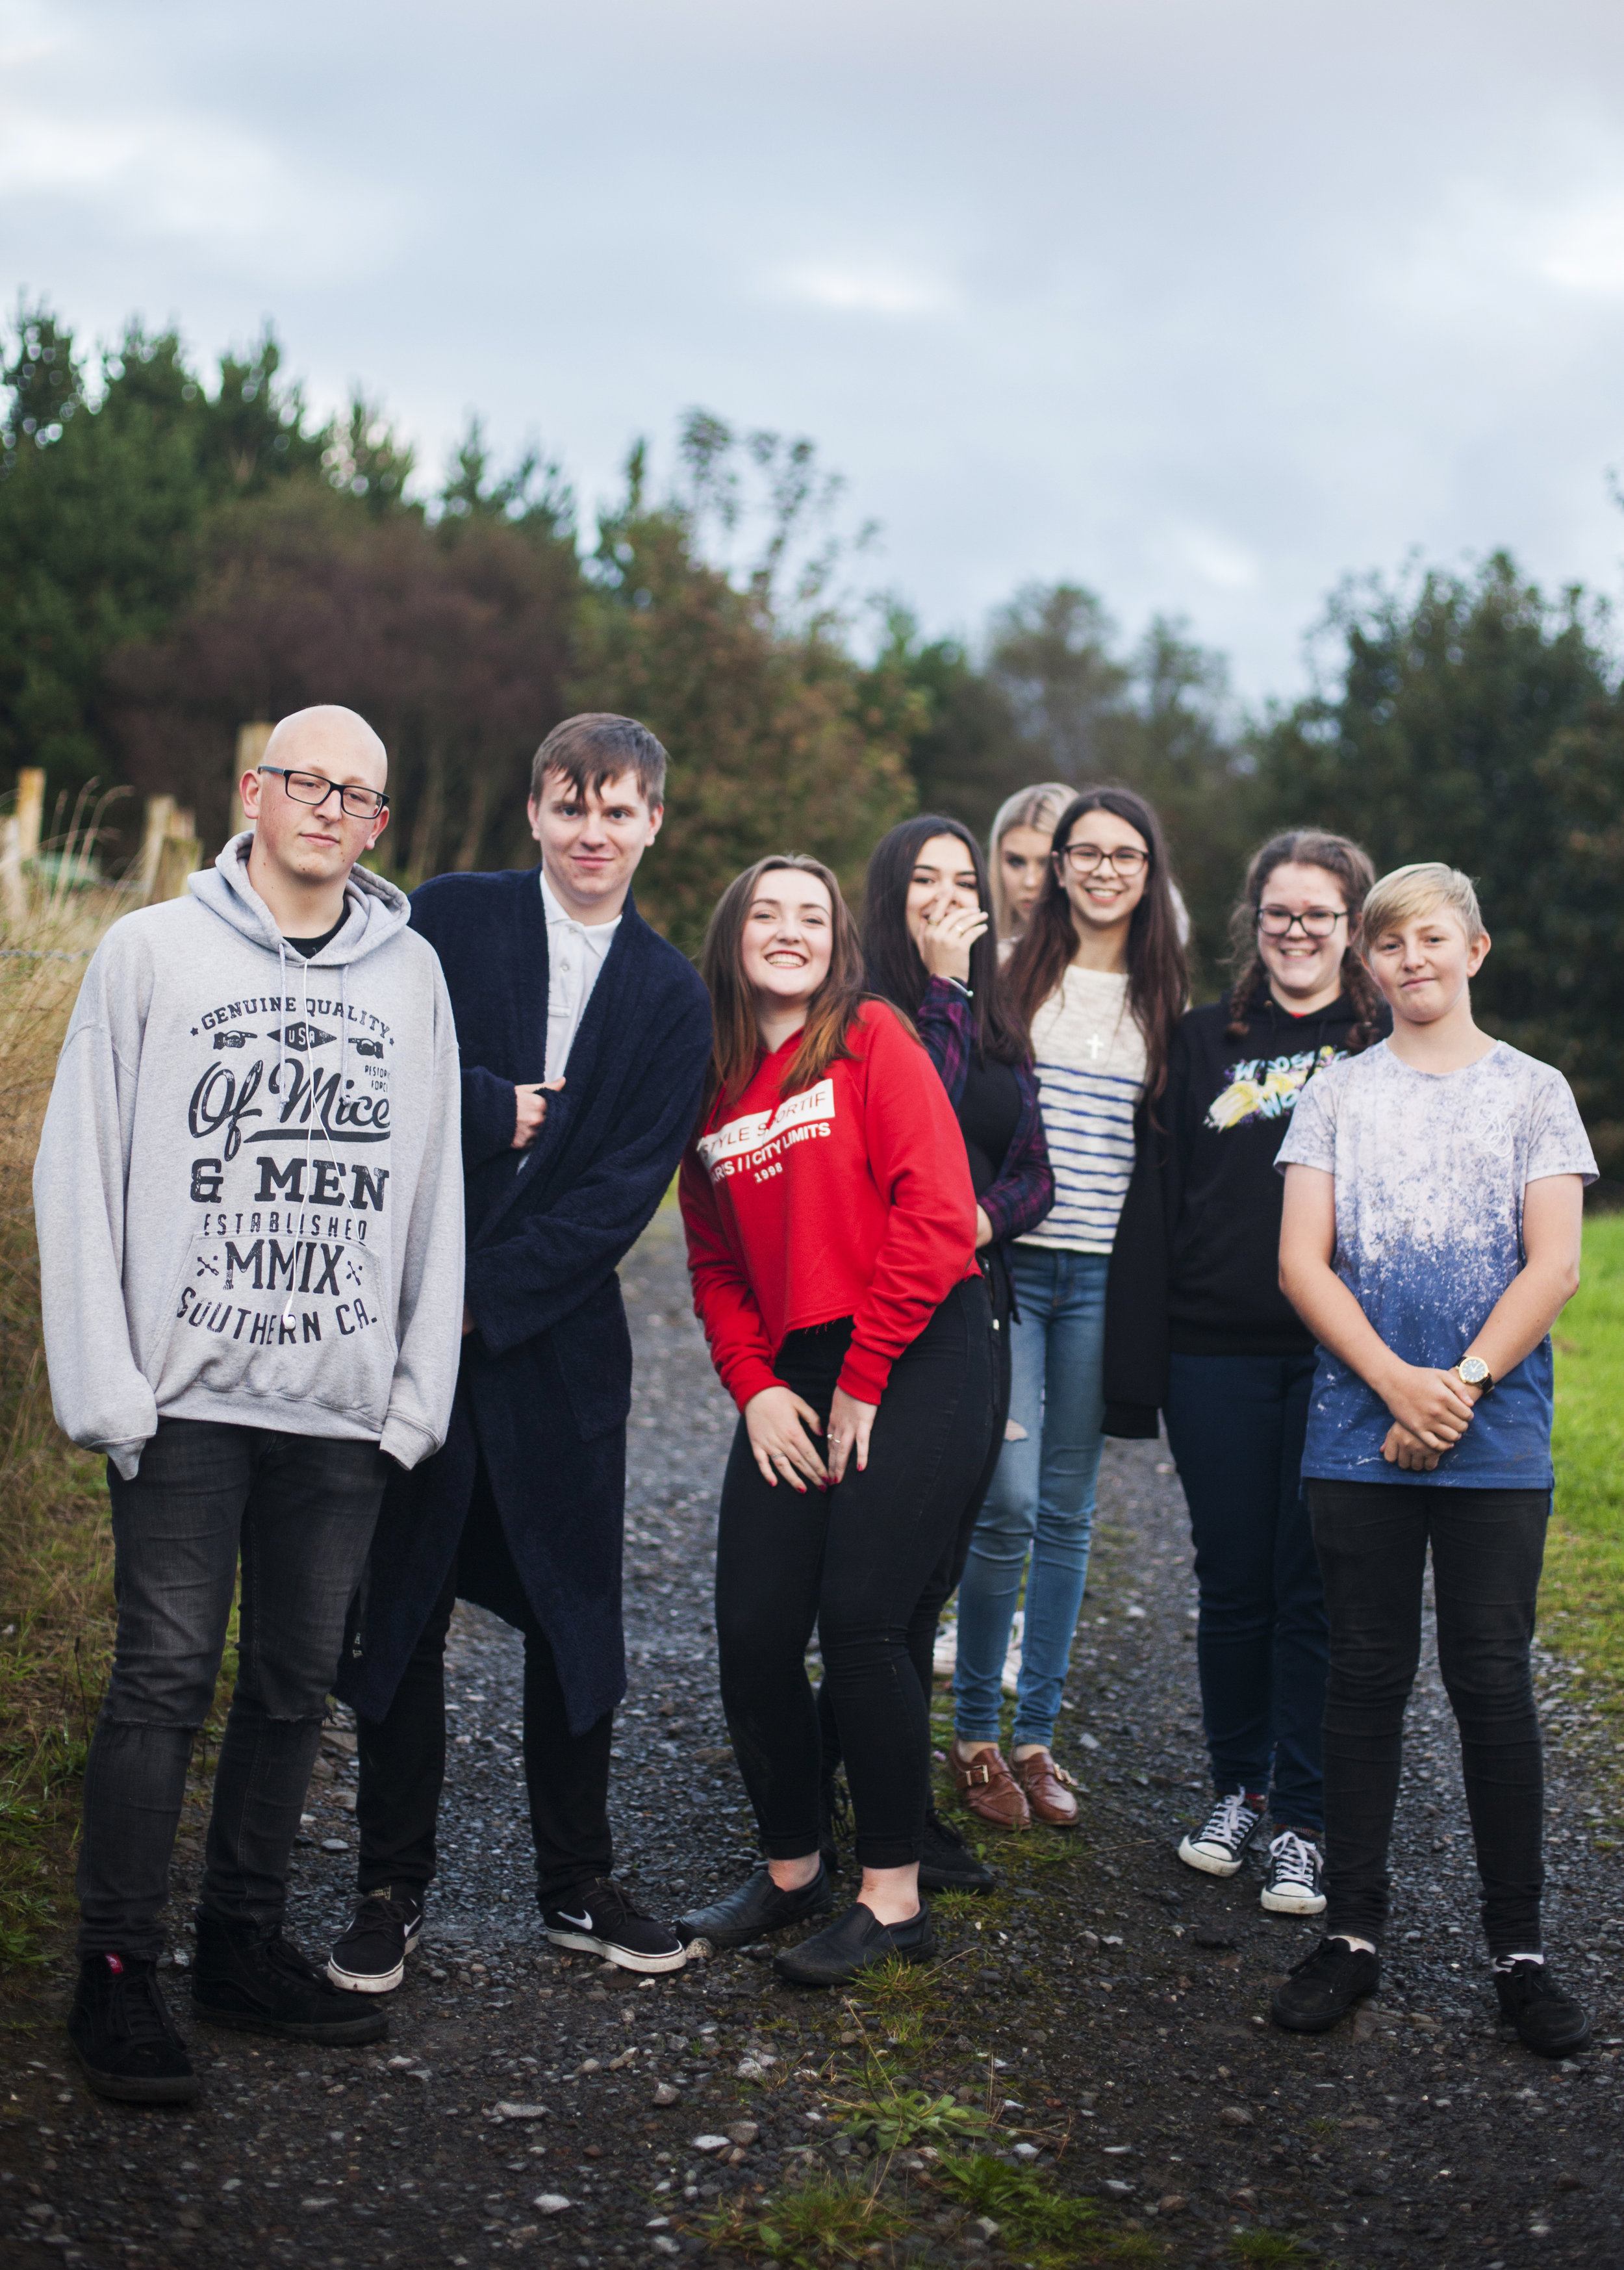 16 in 2016 for The Guardian. Photographers from China, USA, Denmark, Turkey, Iran and more, were commissioned to photograph 16 year olds in 2016. Nick was commissioned to photograph Welsh teenagers.